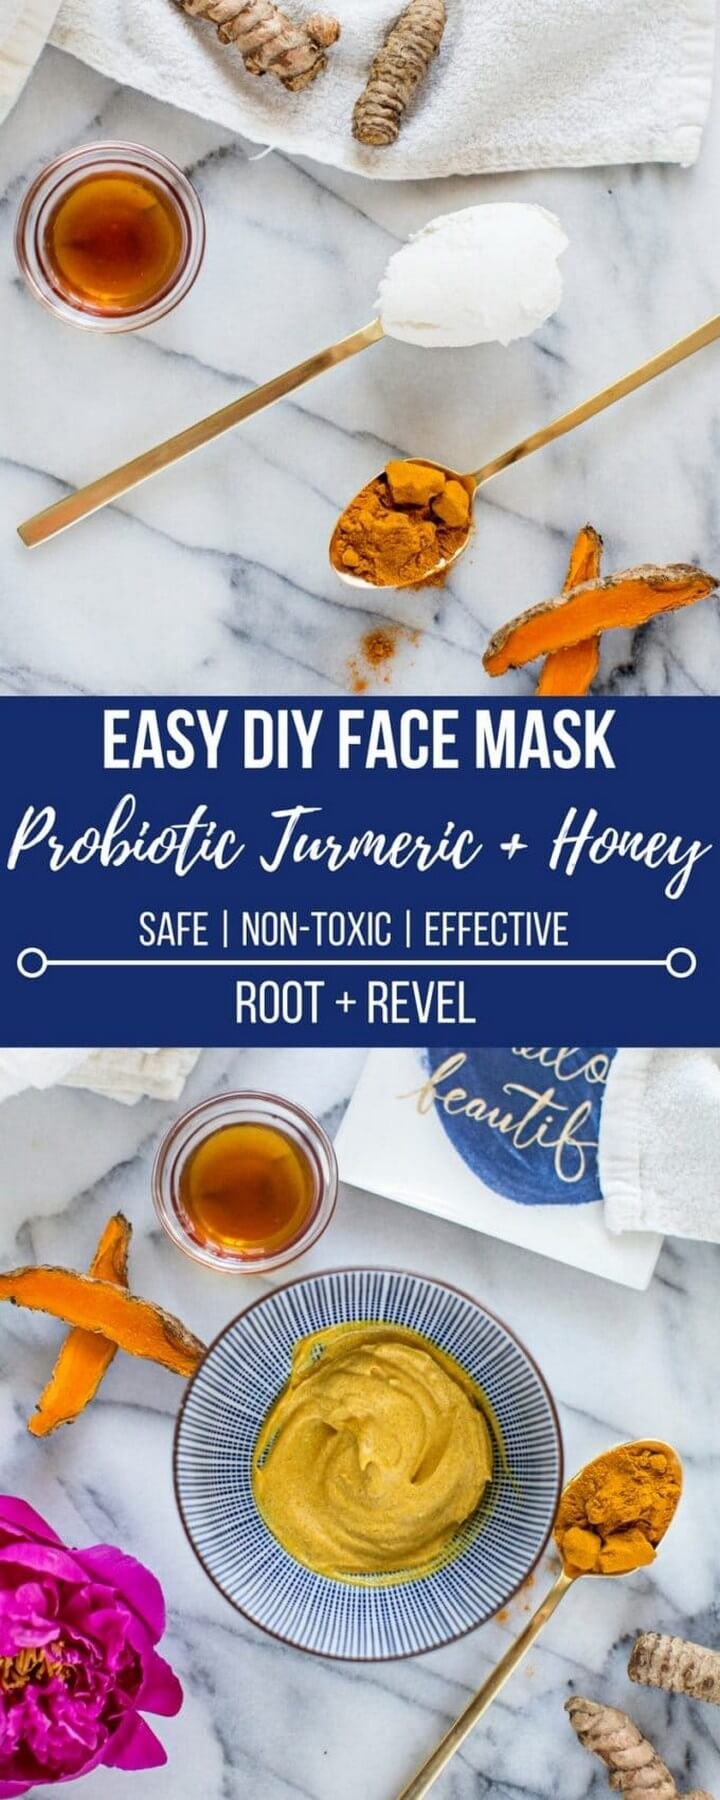 DIY Probiotic Turmeric Honey Face Mask, diy face mask for acne, diy face mask for glowing skin, homemade face mask for dull skin, diy face mask for dry skin, diy face mask without honey, homemade face mask with honey, diy face mask for blackheads, diy face mask for oily skin, diy facial mask, diy facial mask for acne, diy facial masks for acne, diy facial peel off mask, diy facial mask for dry skin, diy facial mask for blackheads, diy facial mask for glowing skin, diy facial mask for oily skin, best diy facial mask, diy facial mask for acne scars, recipe for homemade facial mask, diy facial exfoliating mask, diy green tea facial mask, diy facial peel mask, diy facial mask recipes, diy facial mask for redness, diy facial mask for pores, diy facial mask for combination skin, diy facial mask sheet, diy deep cleansing facial mask, compressed diy facial mask, turmeric facial mask diy, diy facial hair removal mask naturally & permanently at home, compressed diy facial mask forever 21, diy facial mask for wrinkles, diy facial mask for dark spots, diy facial hair removal peel off mask, diy facial hair removal mask, diy facial mask for pimples, which homemade facial mask is the best, diy facial mask gift, best diy facial mask for blackheads, diy facial mask without honey, diy facial mask acne scars, diy facial mask to brighten skin, diy facial mask honey, diy facial mask pinterest, diy facial mask for breakouts, vegan facial mask diy, diy facial mask with lemon, diy facial mask for rosacea, diy facial paper mask, diy facial mask kit, diy face mask to remove facial hair, diy facial mask scrub for oily acne prone skin, diy facial mask sensitive skin, diy facial mask mixing bowl, diy facial mask dry skin, diy facial mask ingredients, diy facial collagen mask, diy facial steam mask, diy essential oil facial mask, diy facial mask at home, how to diy facial mask, diy facial mask with honey, diy facial masks that work, diy face mask using masks, diy facial mask with oatmeal, diy facial mask avocado, diy for facial mask, diy facial mask natural, diy facial mask how to make, diy facial moisturizing mask, diy facial mask for acne prone skin, best diy facial mask for acne, diy facial mask hydrating, yogurt facial mask diy, diy facial mask with baking soda, how to make diy facial mask, glowing facial mask diy, diy egg white facial mask, diy facial mask for eczema, recipe for facial mask, diy facial mask glowing skin, facial diy mask bowl, diy facial mask for dark circles, diy face mask for facial hair, turmeric diy facial mask, diy facial mask with clay, diy banana facial mask, diy enzyme facial mask, diy facial mask with coconut oil, diy tomato facial mask, diy daily facial mask, diy facial mask for sensitive skin, diy organic facial mask, diy rose facial mask, recipe for facial mask with avocado, diy facial paper compress mask, diy detox facial mask, diy facial cloth mask, how to diy a face mask, diy facial tightening mask, diy pumpkin facial mask, homemade diy facial mask, diy facial clay mask, diy rice facial mask, fun and easy diy facial mask, the best diy facial mask, diy facial mask for whiteheads, diy egg facial mask, diy overnight facial mask, diy gold facial mask, diy facial mask for aging skin, diy facial mask for pigmentation, diy jelly facial mask, diy facial mask for scars, diy oxygen facial mask, diy papaya facial mask, diy face mask to remove unwanted facial hair, diy aloe facial mask, matcha facial mask diy, diy facial mask for hair removal, diy aloe vera facial mask, diy facial mask for mature skin, diy facial mask for tired skin, diy facial mask with activated charcoal, diy facial mask easy, diy facial mask for clogged pores, diy peel off facial mask aloe vera, facial mask treatment diy, korean facial mask diy, mumuso diy facial mask tool set, diytomake.com,